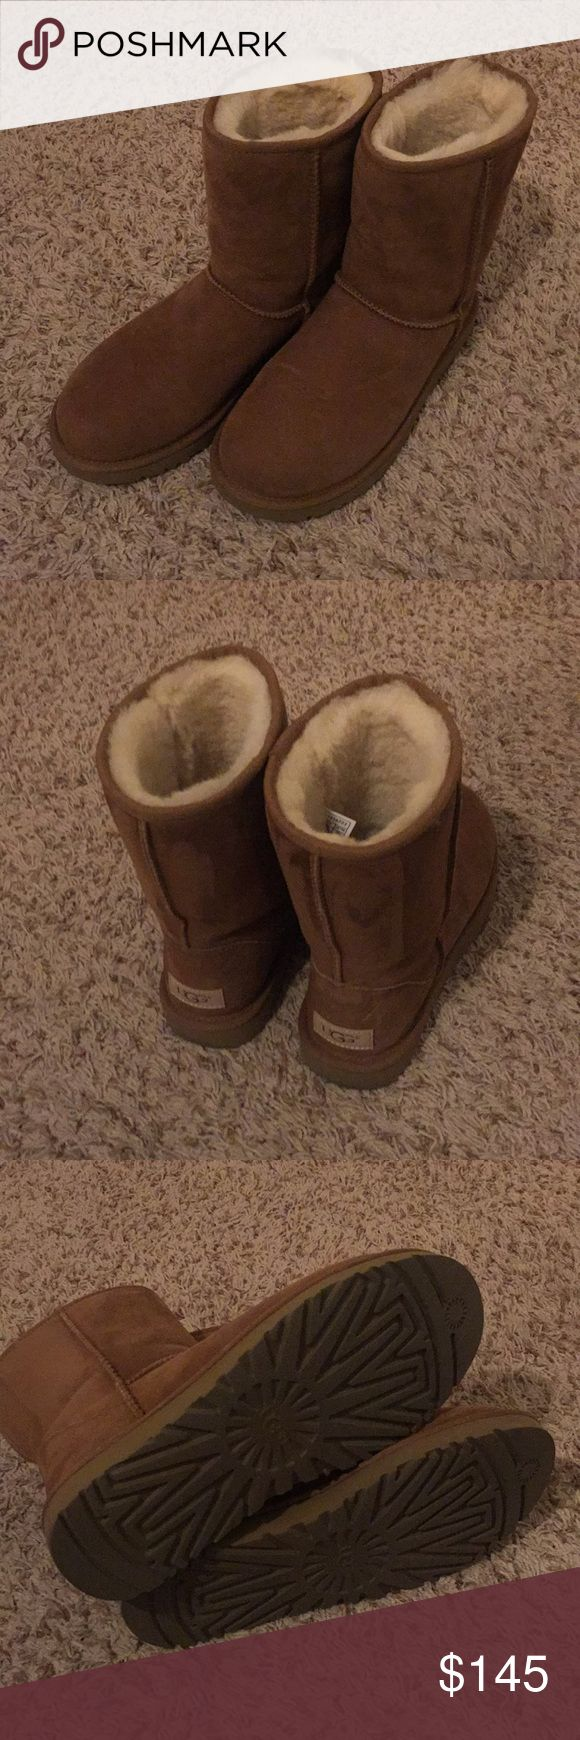 Classic II Short Chestnut Ugg Boot Basically brand new I only wore them 2-3 times! I bought them at an Ugg store so they are guaranteed authentic! They are the classic II, which means they are water resistant. Will fit anywhere from a size 8-9. UGG Shoes Winter & Rain Boots